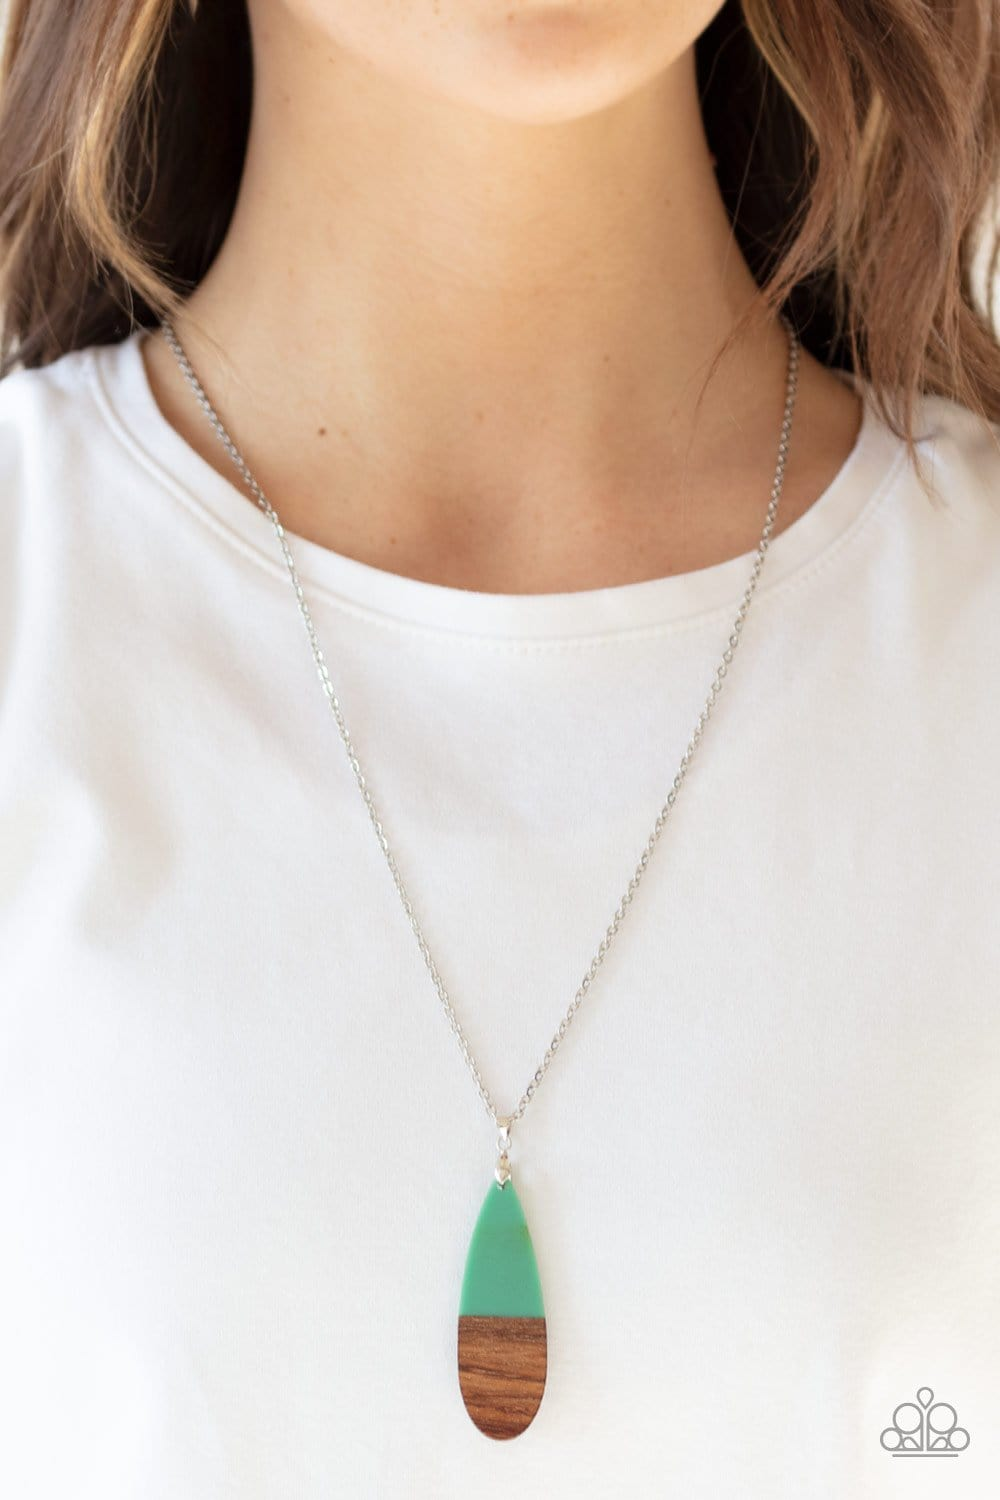 Paparazzi: Going Overboard - Green Wooden Necklace - Jewels N' Thingz Boutique